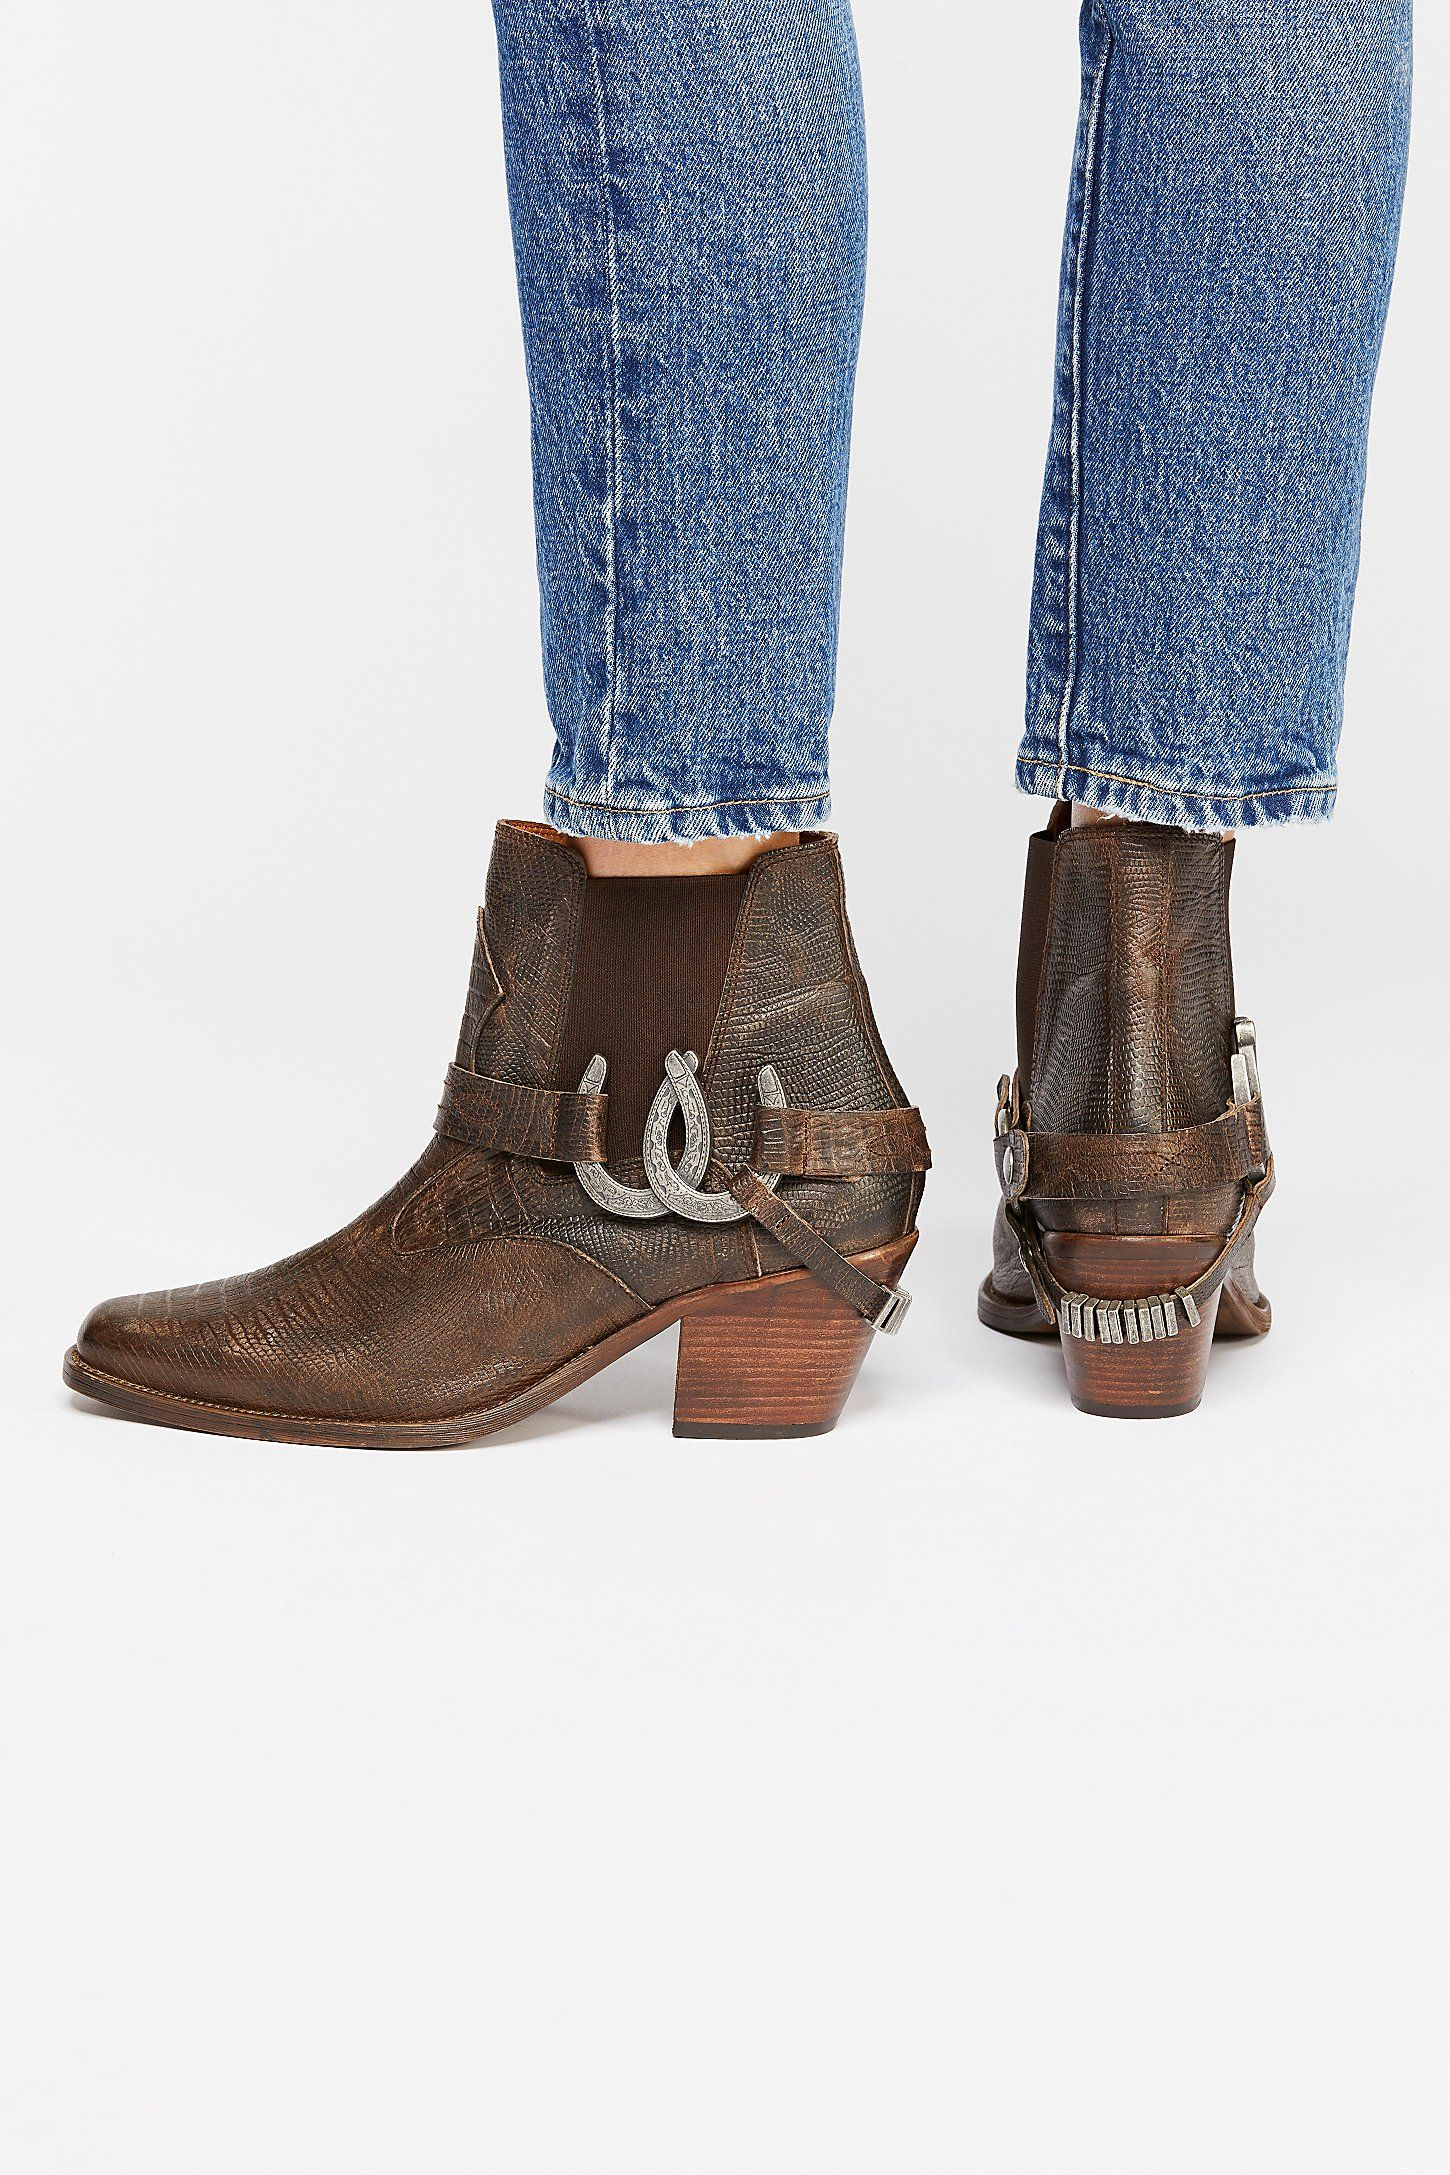 new product 944f8 76604 Lady Luck Ankle Boot   Free People